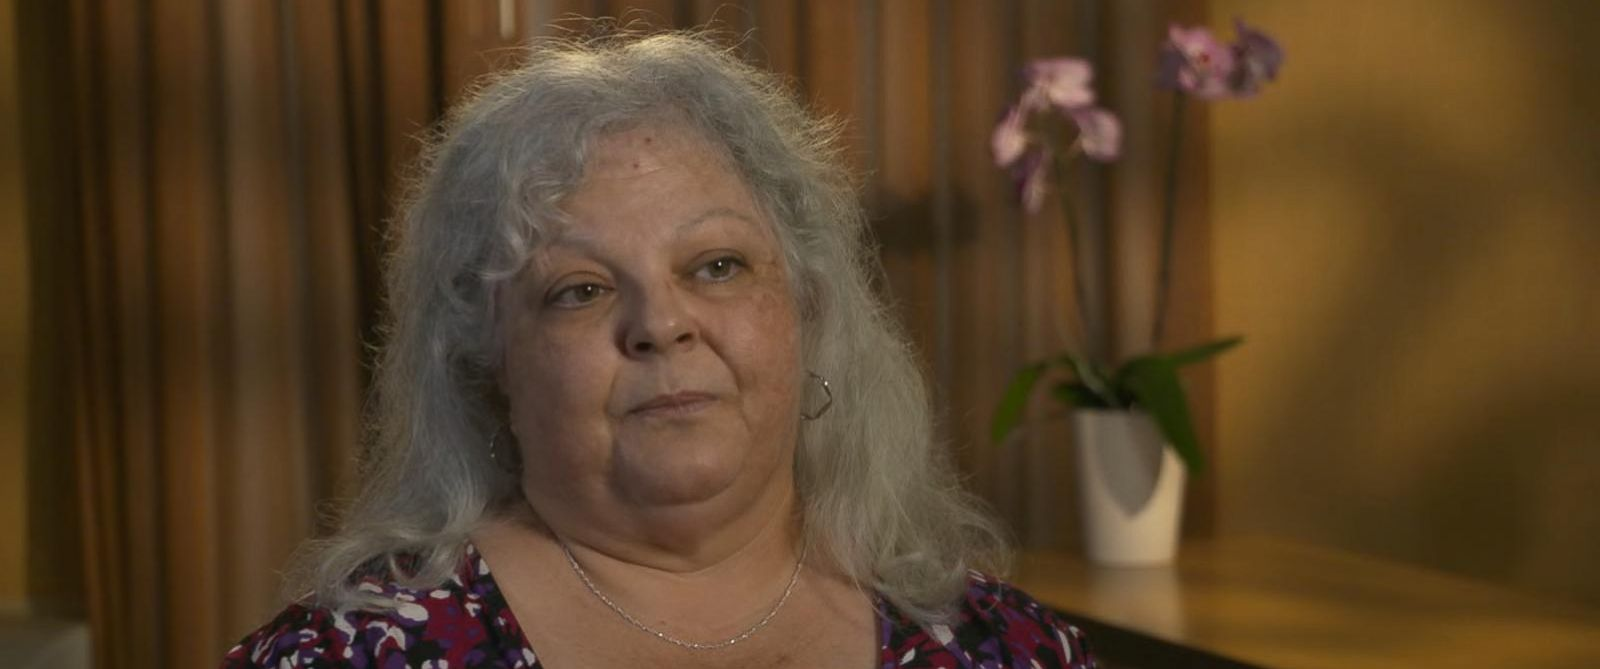 VIDEO: Heather Heyer's mother is proud her daughter fought injustice